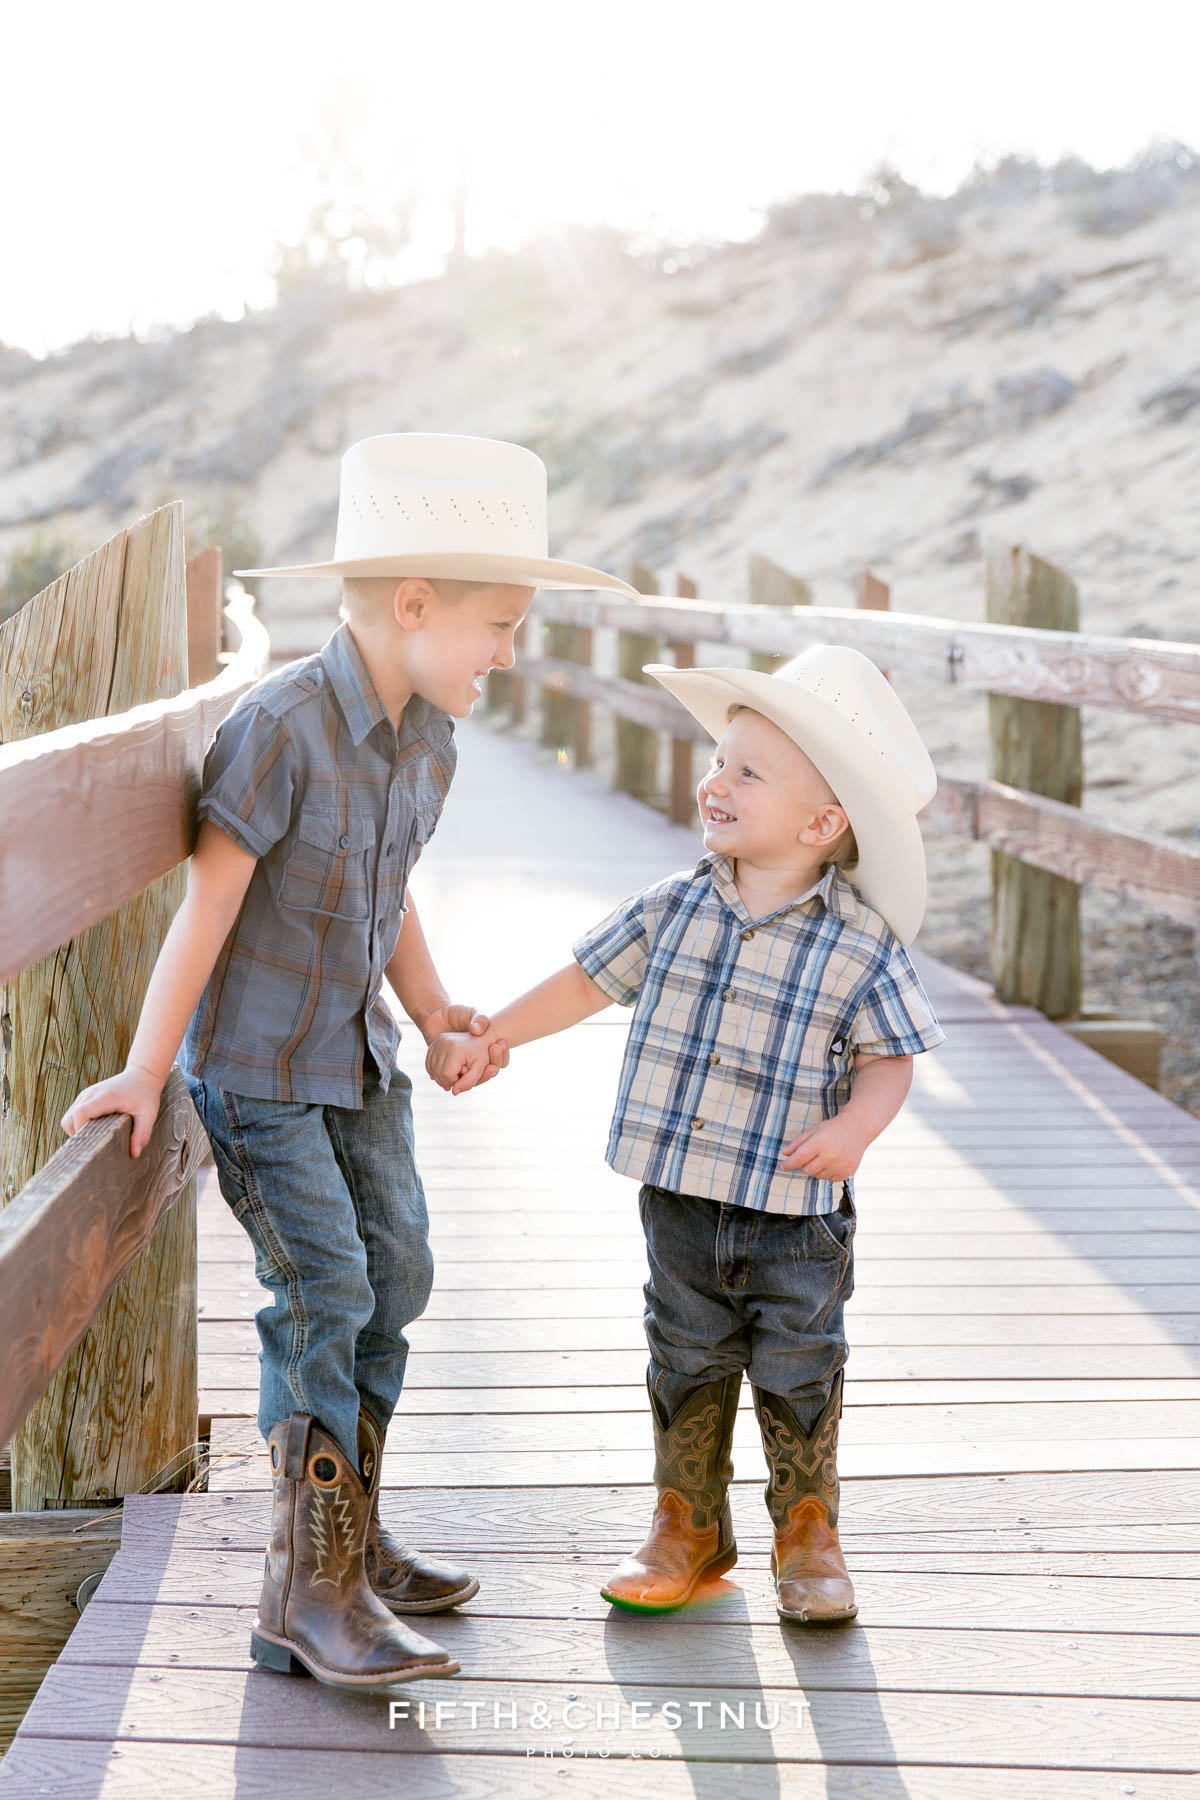 two little boys holding hands on a wooden path wearing plaid shits and cowboy hats giggling at each other